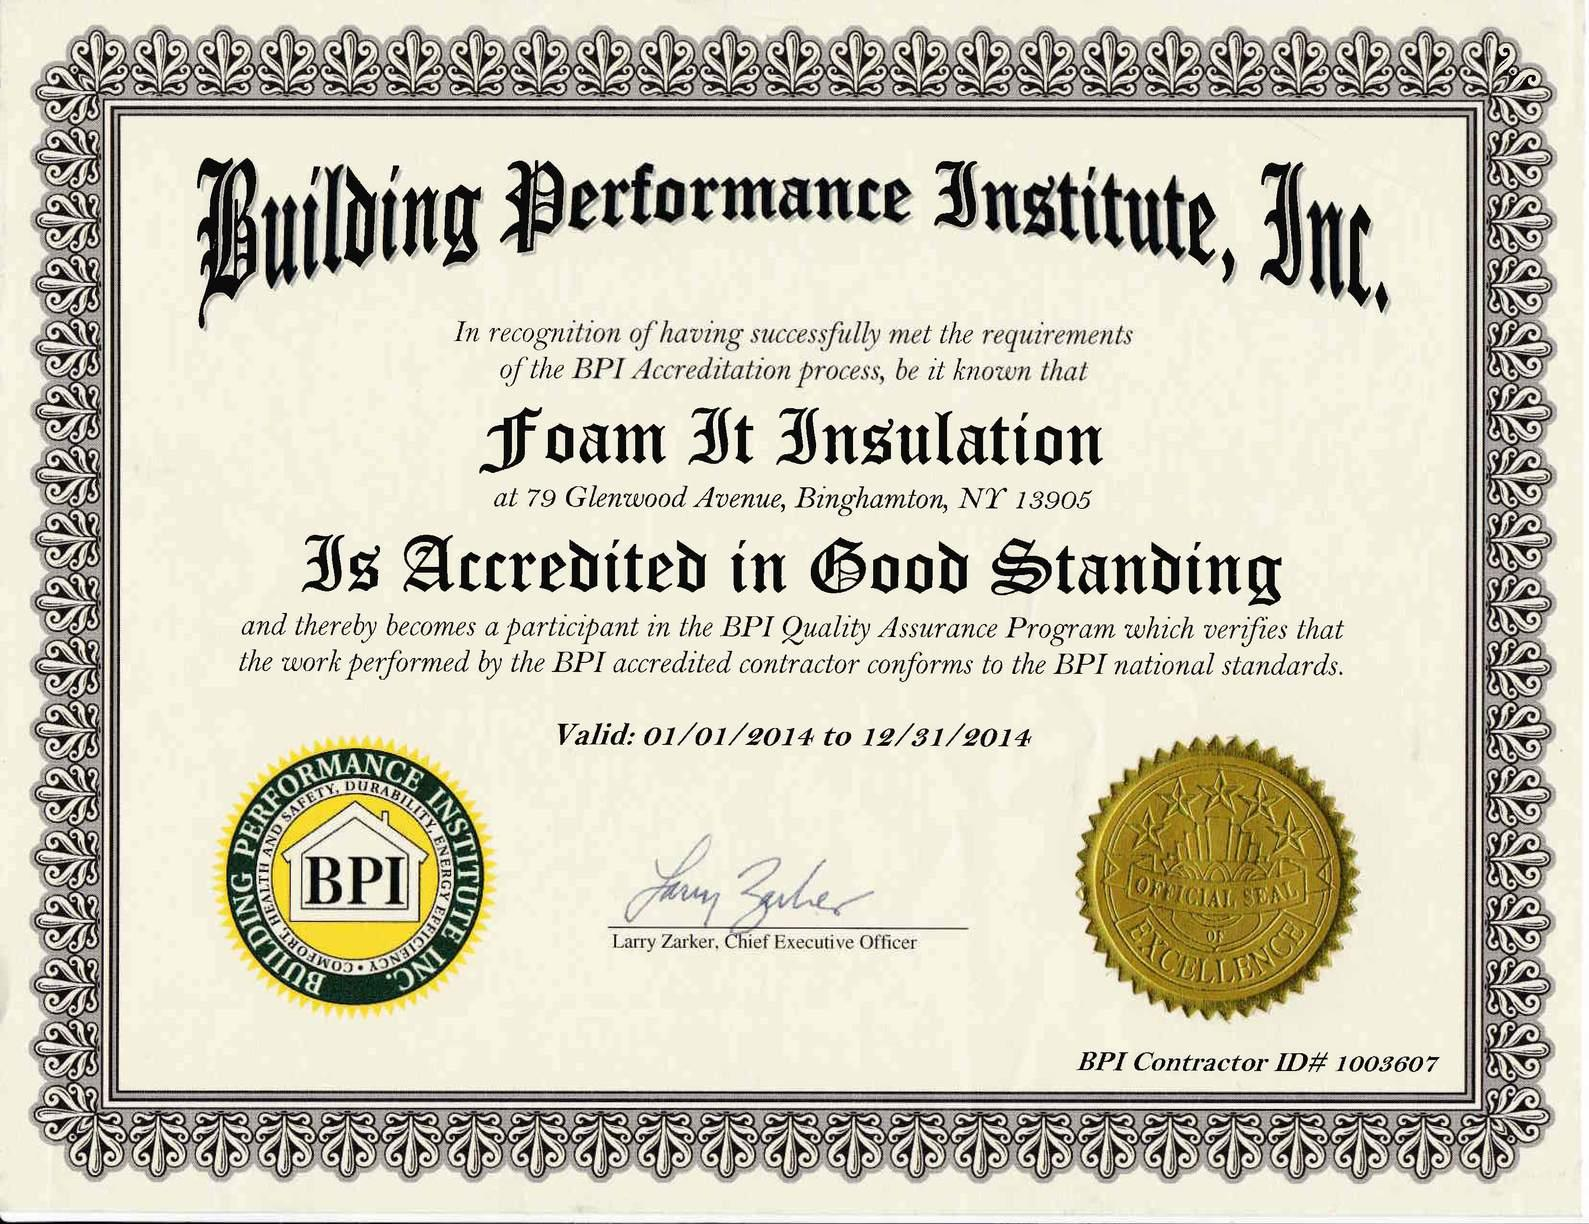 Building Performance Institute 2014 Accreditation Certificate